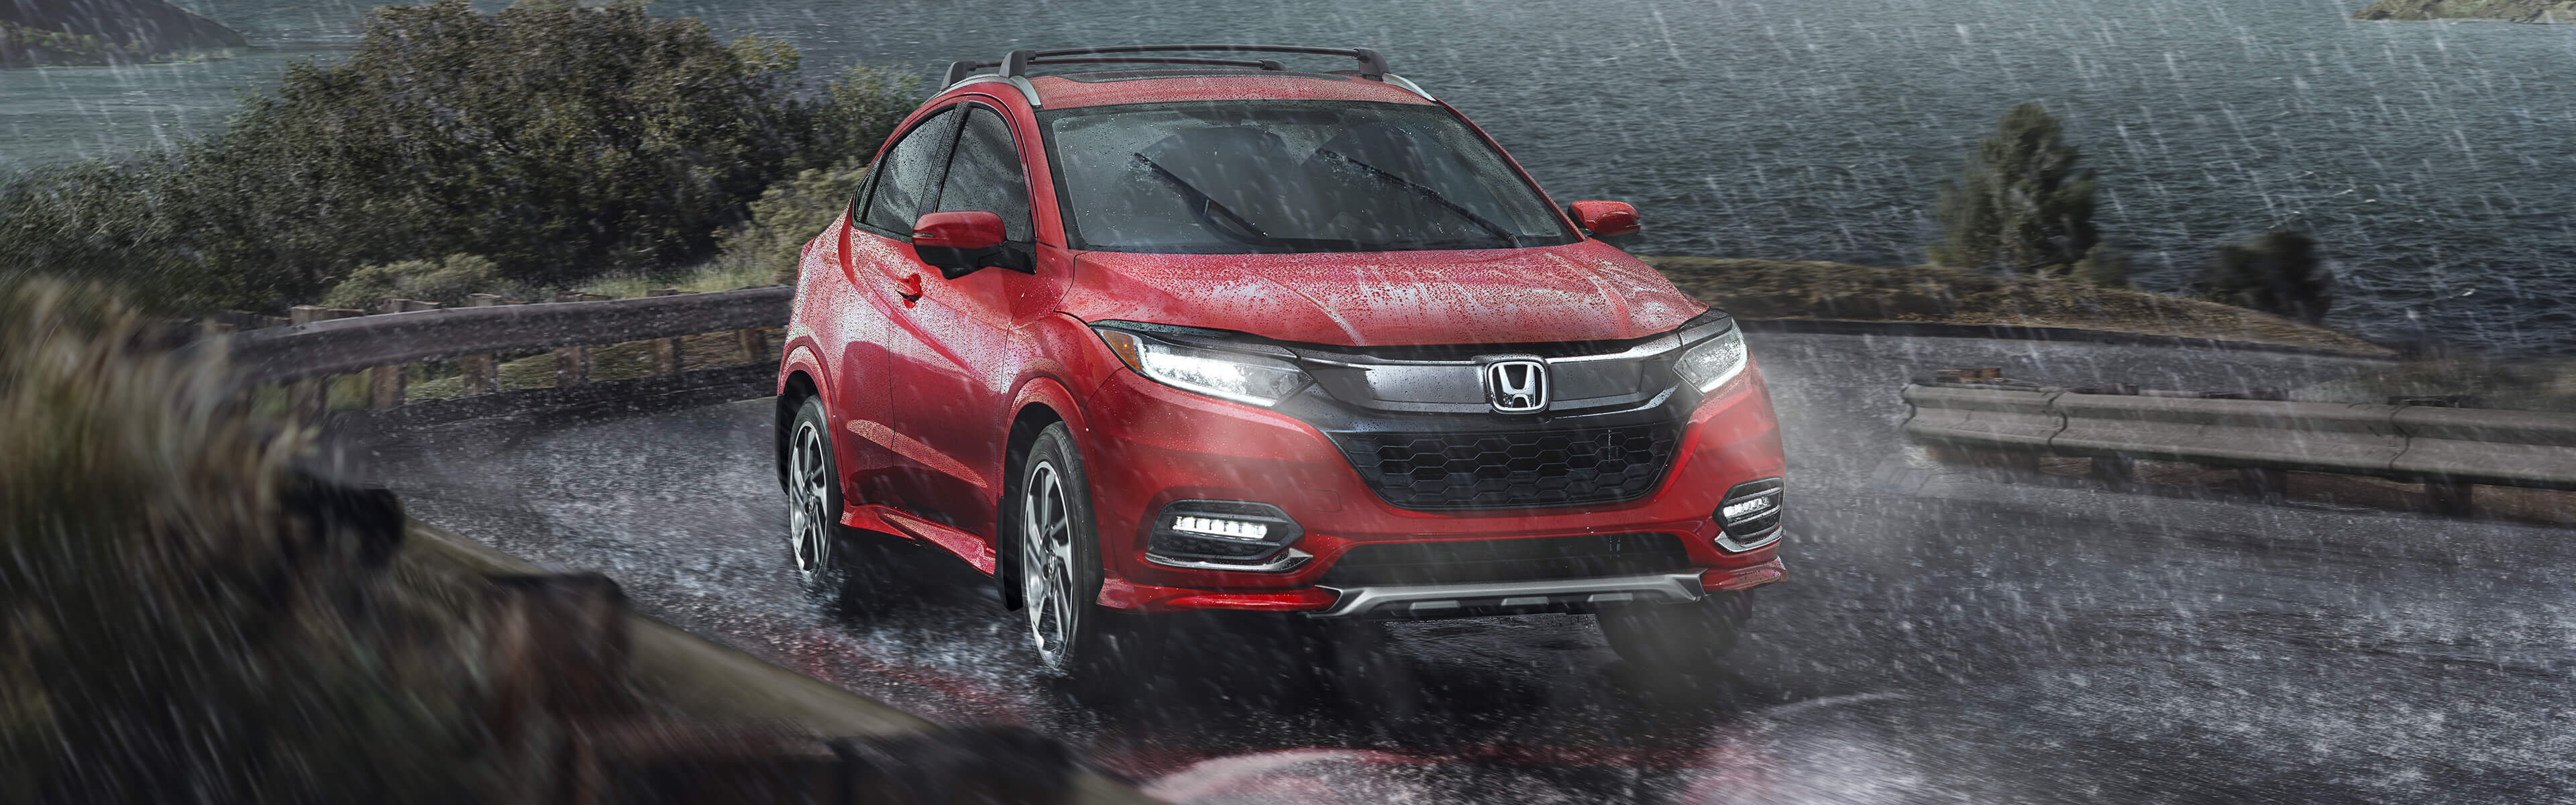 Secure A Sporty 2019 Honda HR-V Crossover In New Glasgow, Nova Scotia